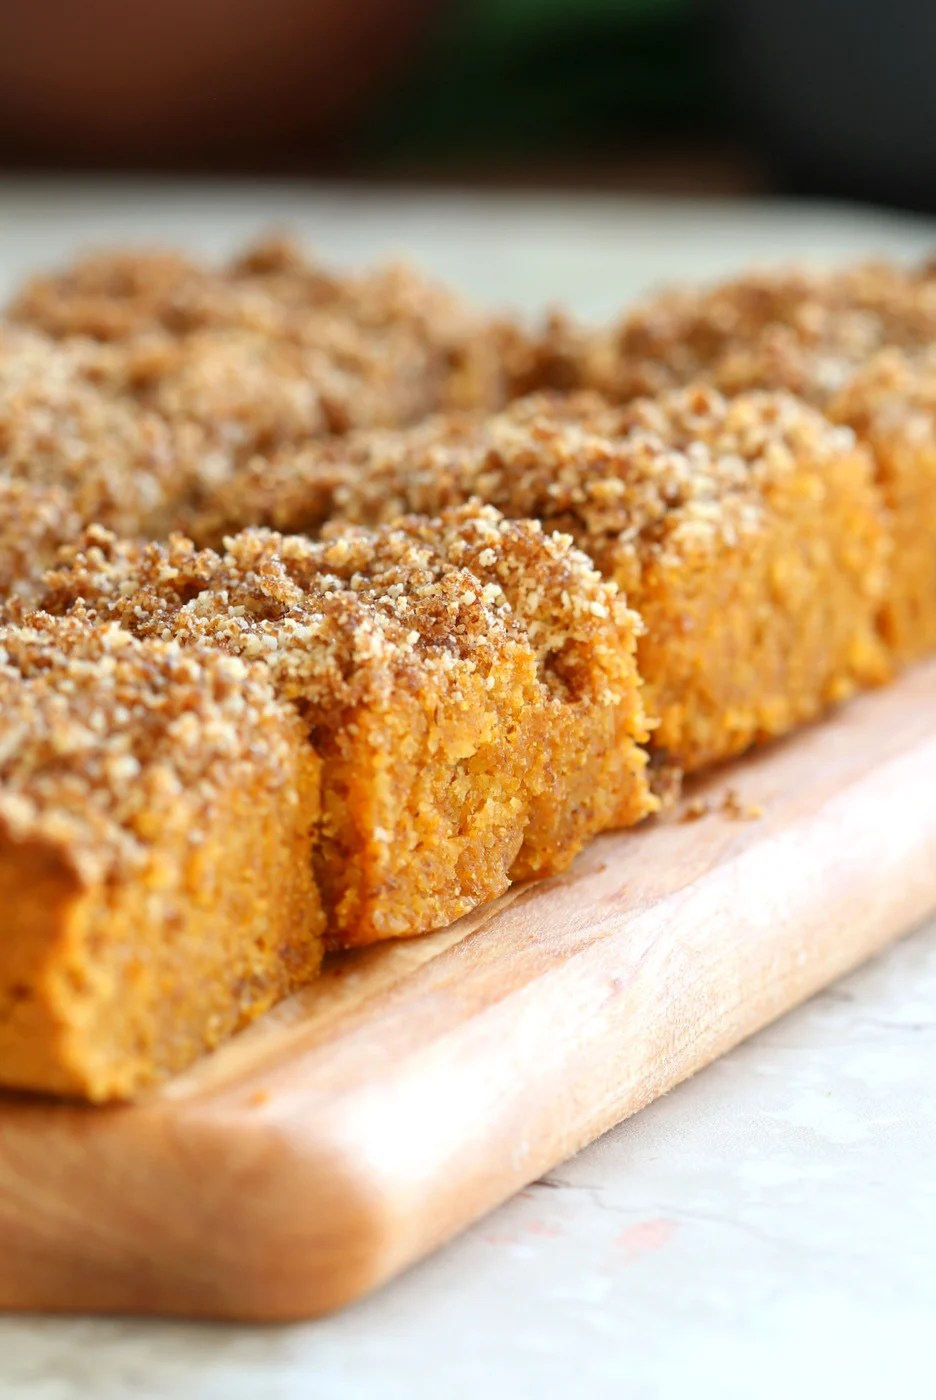 These Vegan Gluten-free Pumpkin Bars are grain-free, fudgy and so Delicious! Cinnamon streusel on top makes them decadent and festive. No added Oil, can be refined sugar free. #Vegan #Glutenfree #Soyfree #Paleo #Grainfree #Recipe #VeganRicha